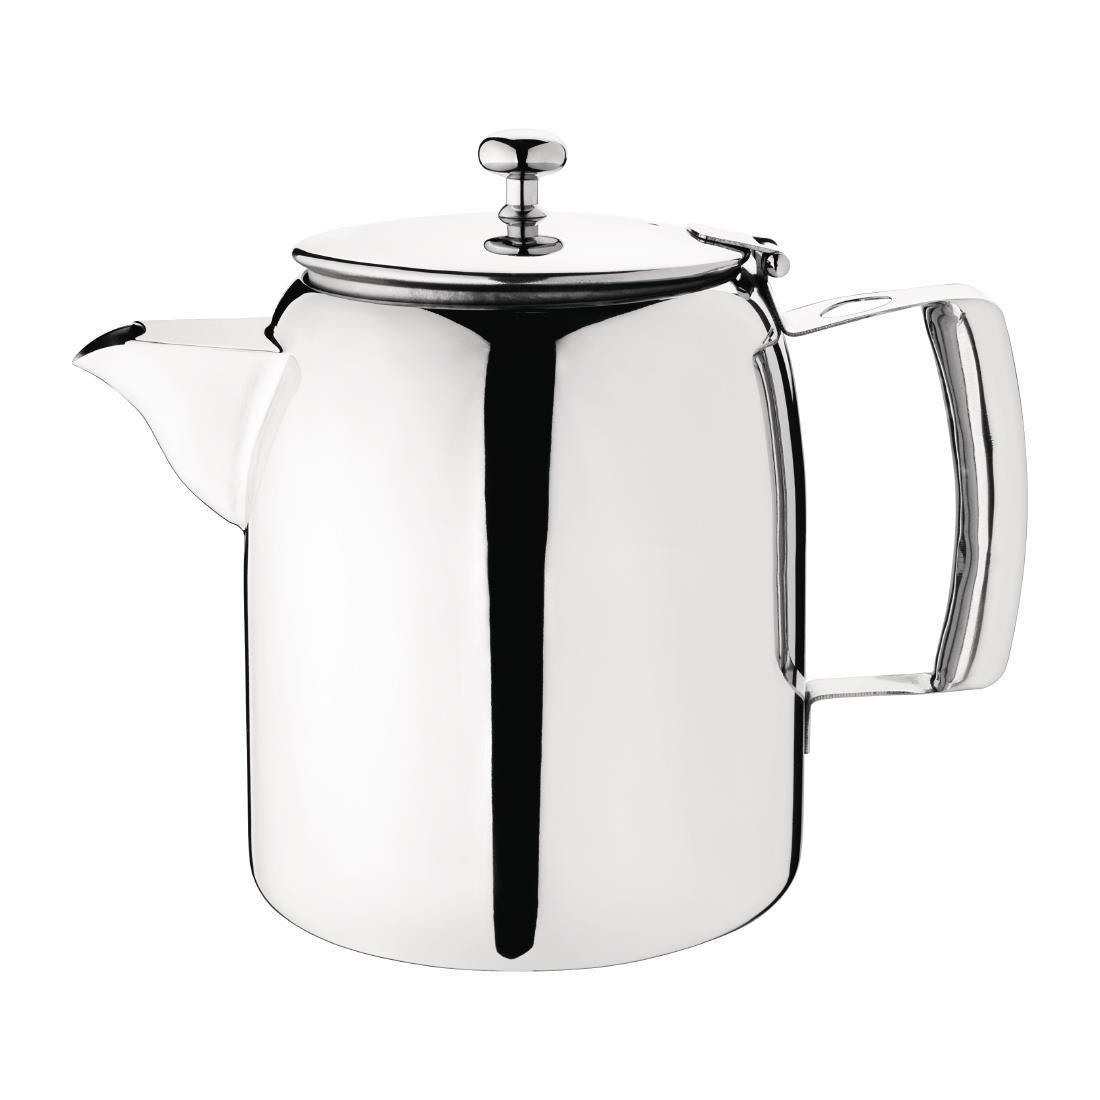 Olympia Cosmos Stainless Steel Teapot 1.4Ltr